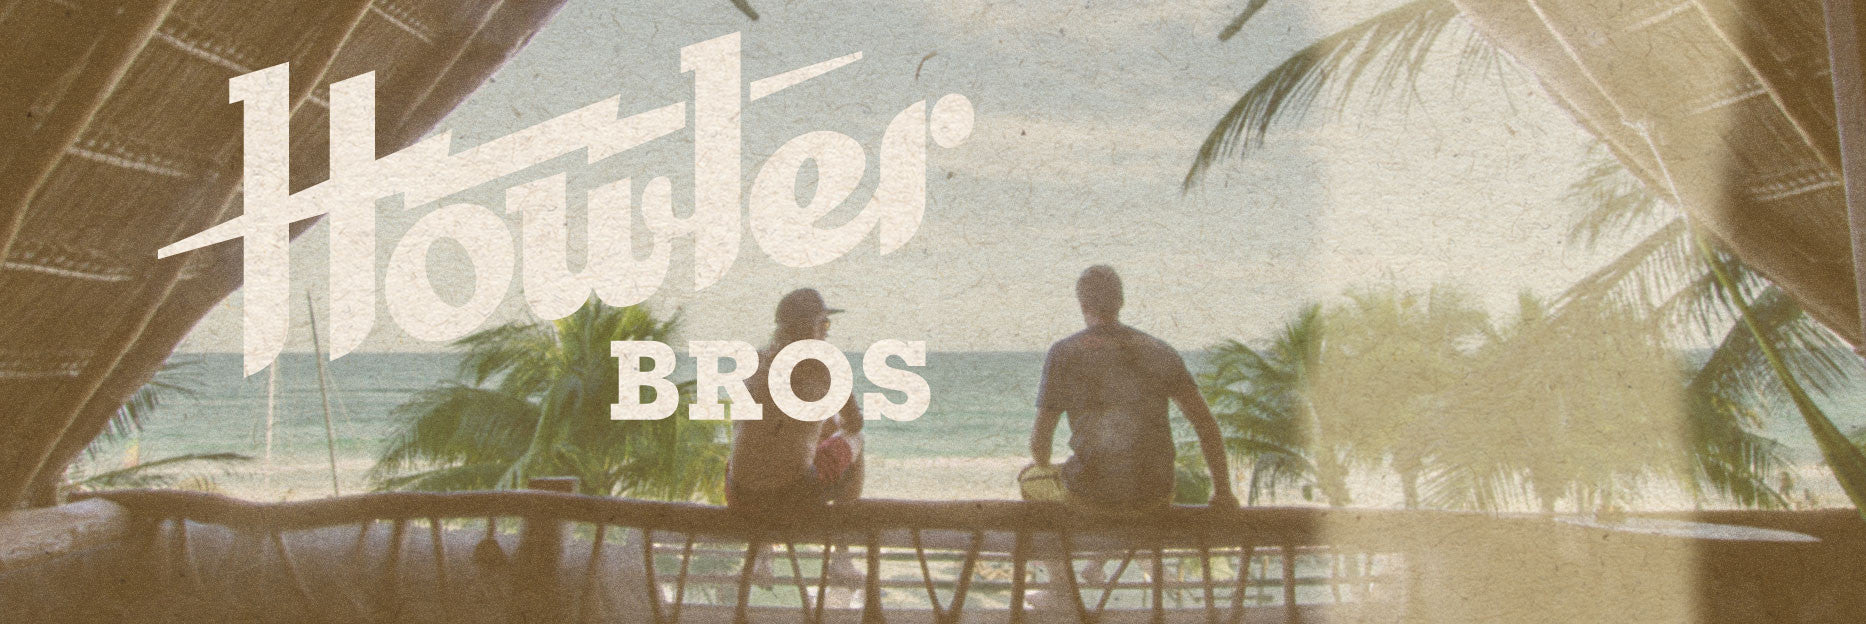 Join the Howler Brothers team - jobs at Howler Brothers